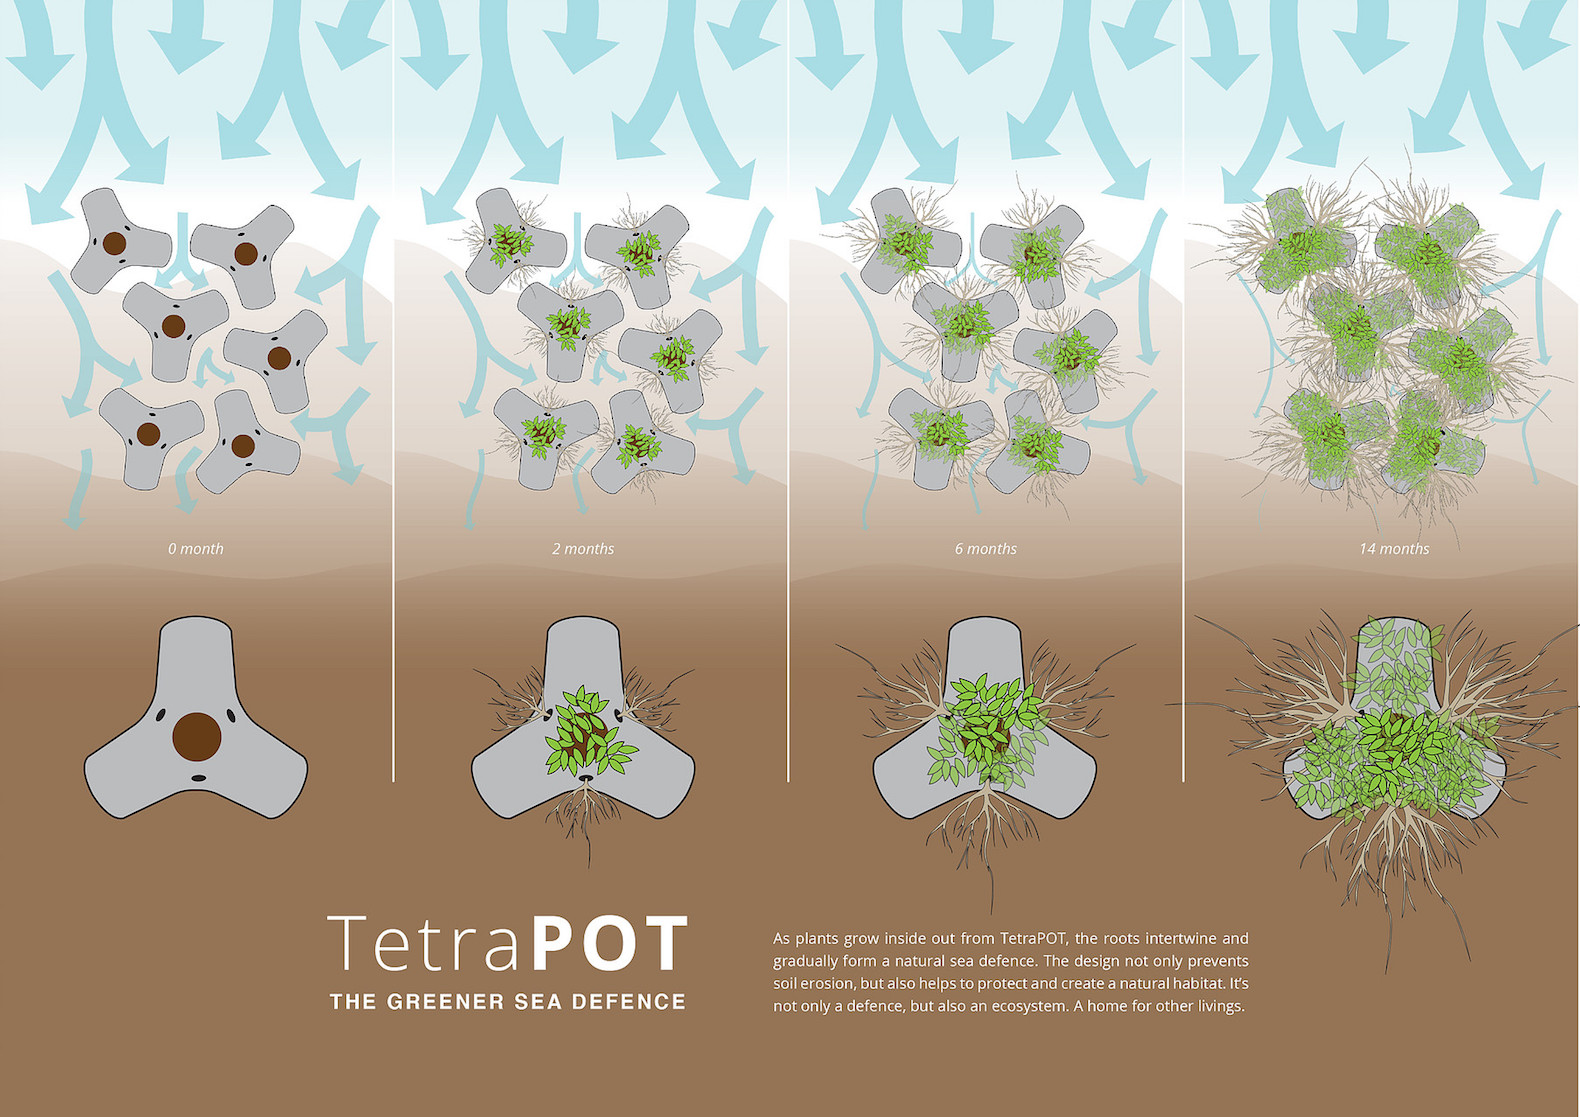 TetraPOT uses mangroves to grow a greener sea defense system.